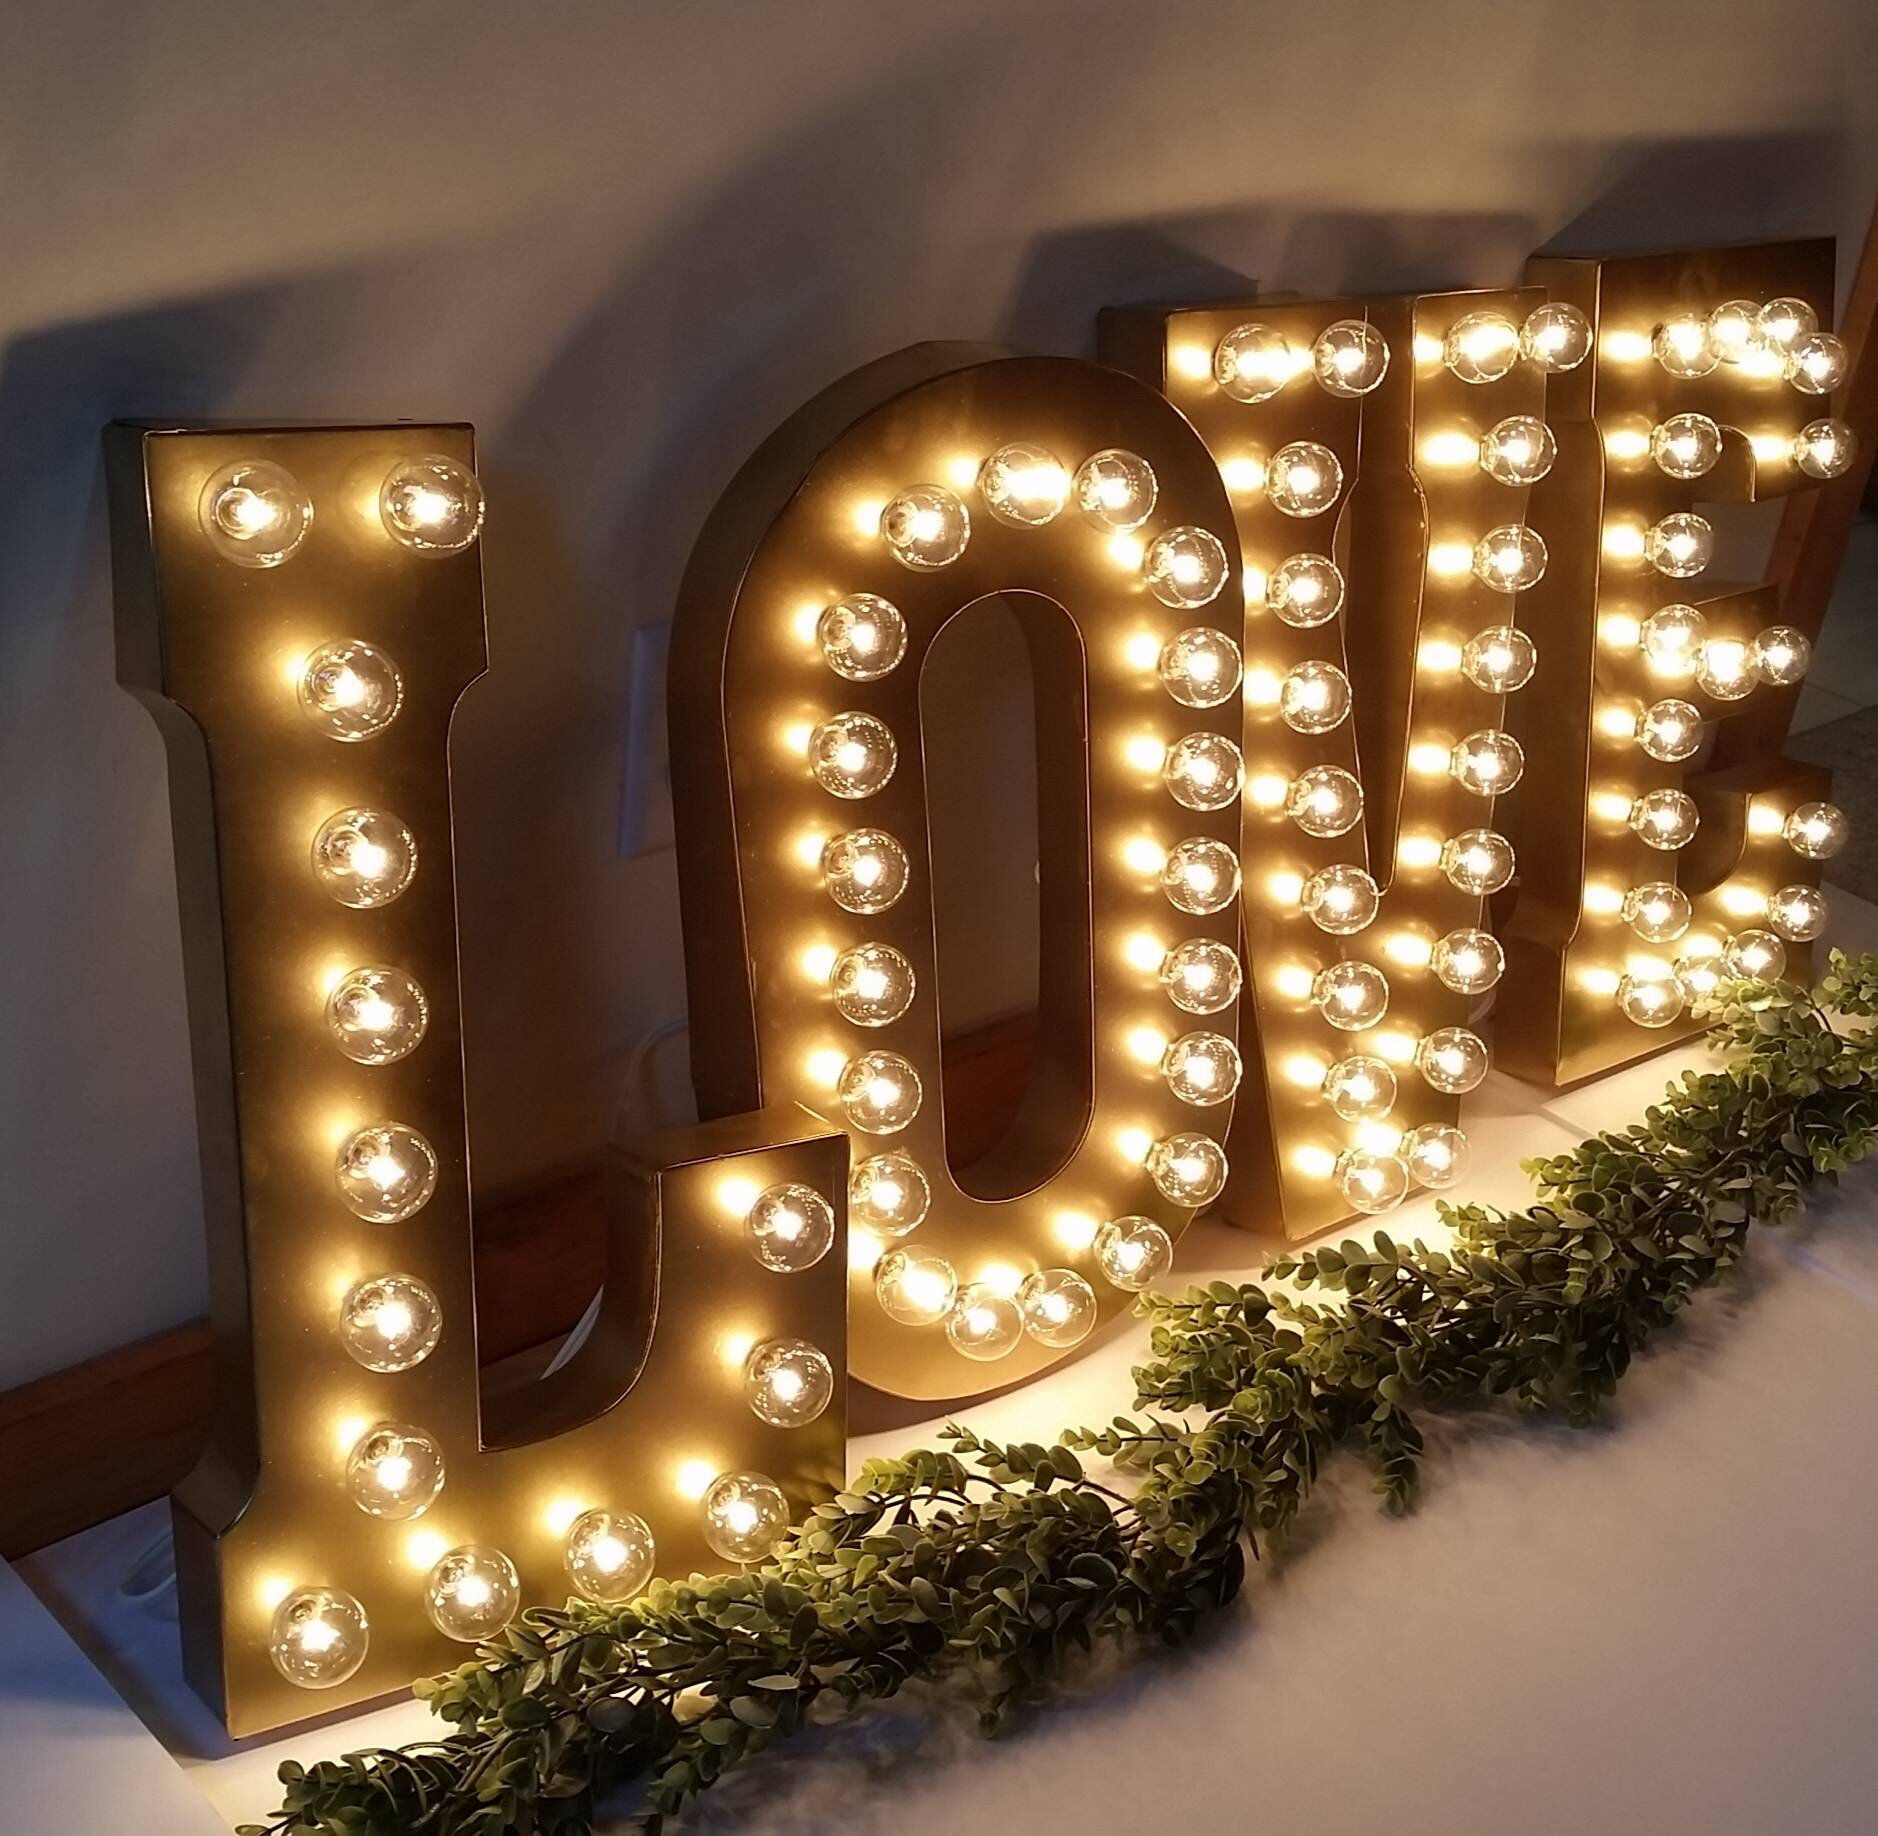 Gold Large Wedding Marquee Light Light Up Letter Giant Light Up Letter Led Marquee Sign Etsy Wedding Sign Marquee Letter 21 Light In 2020 Etsy Wedding Signs Light Up Letters Large